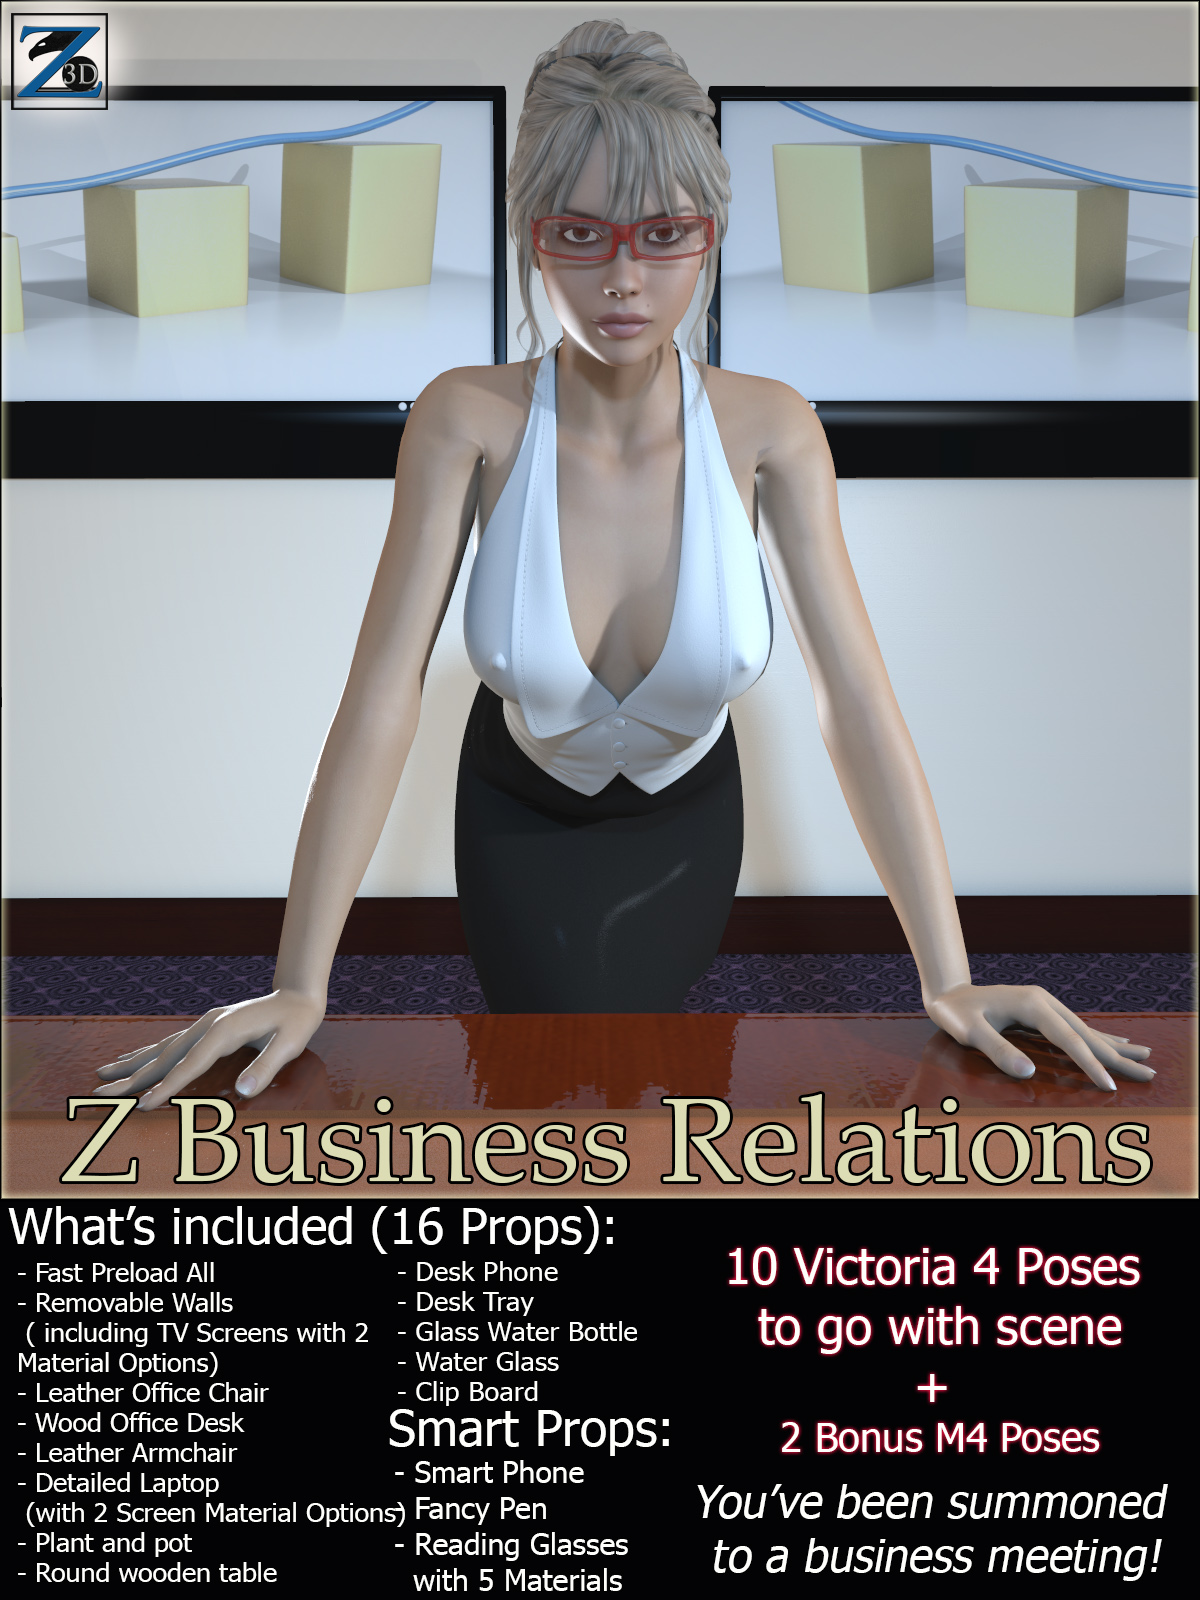 Z Business Relations + Poses